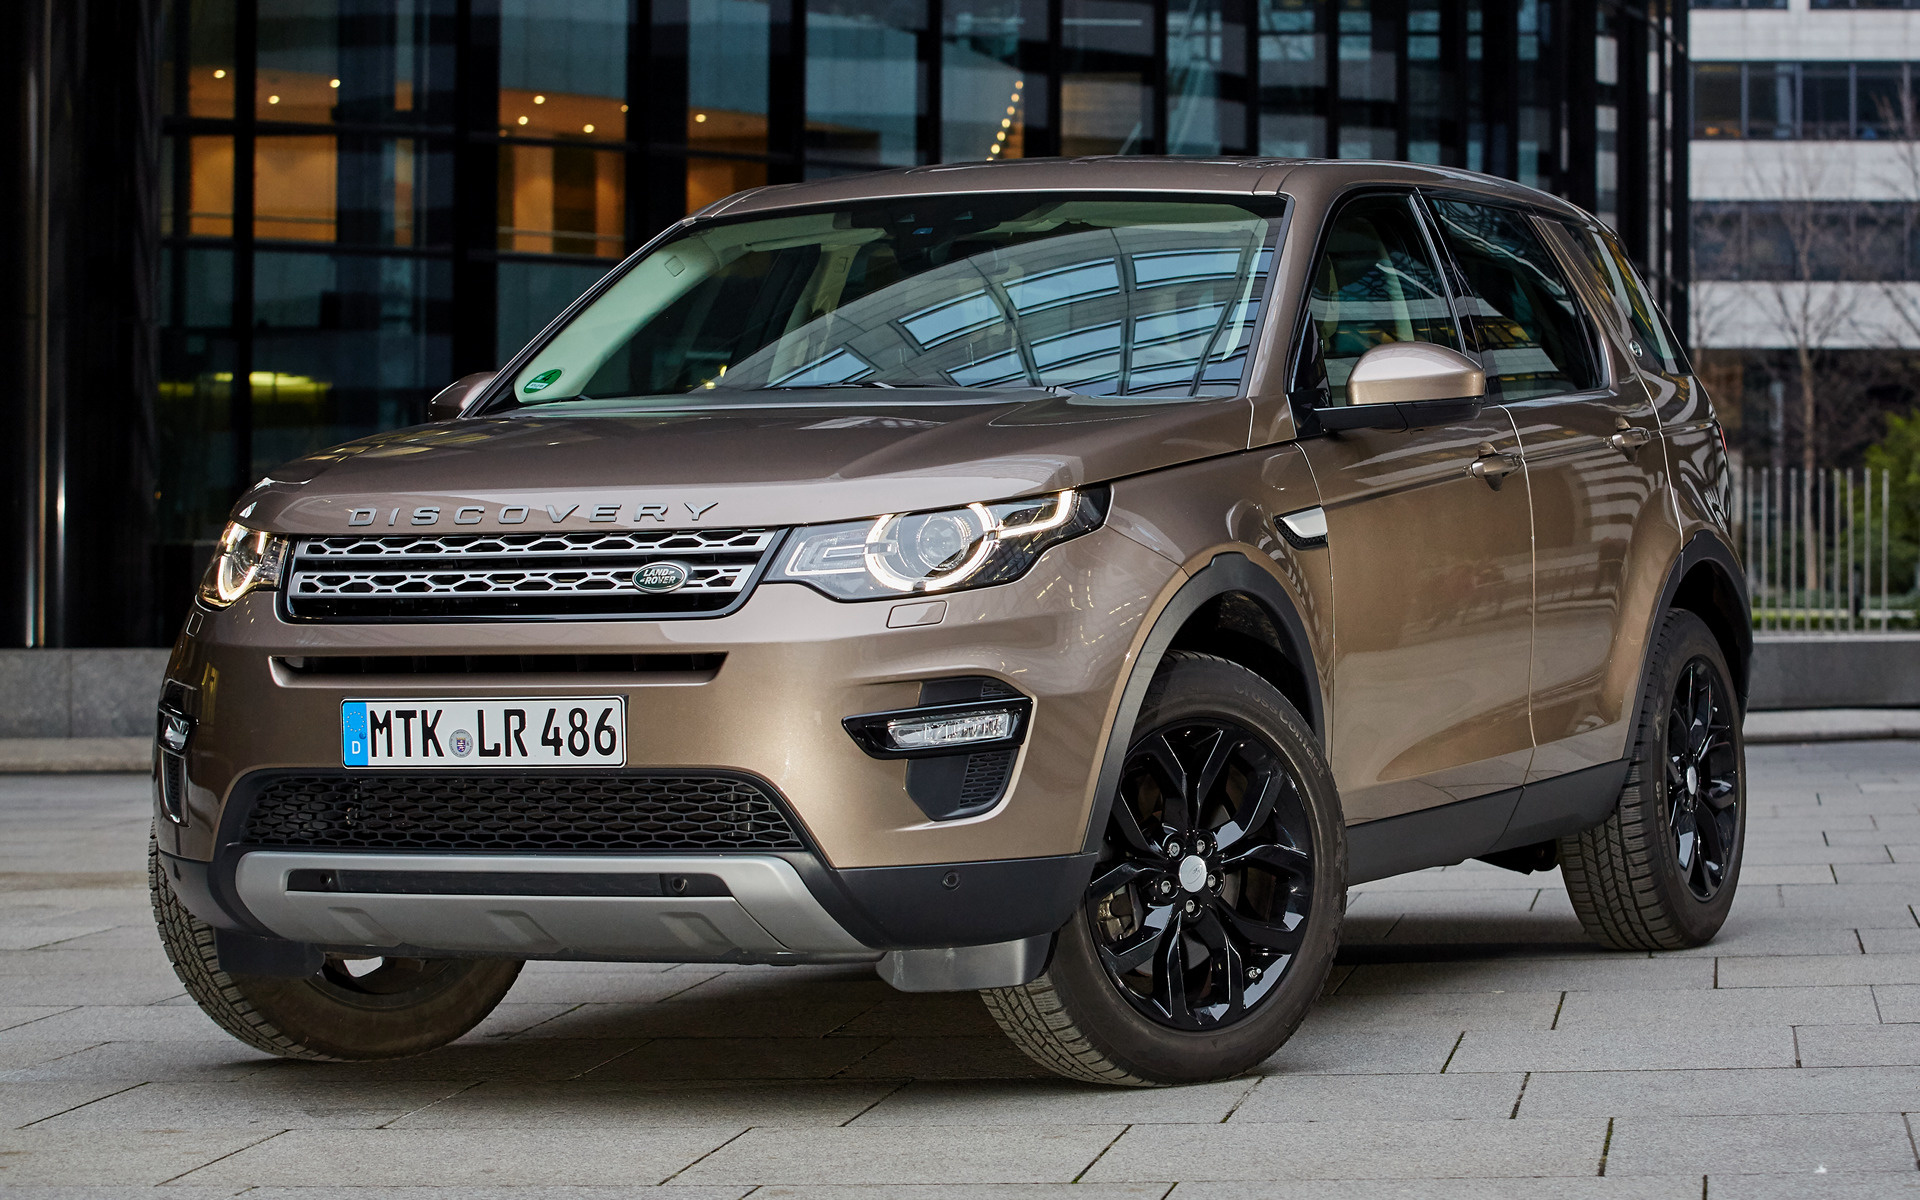 Hd Car Wallpapers Subaru 2015 Land Rover Discovery Sport Black Design Pack